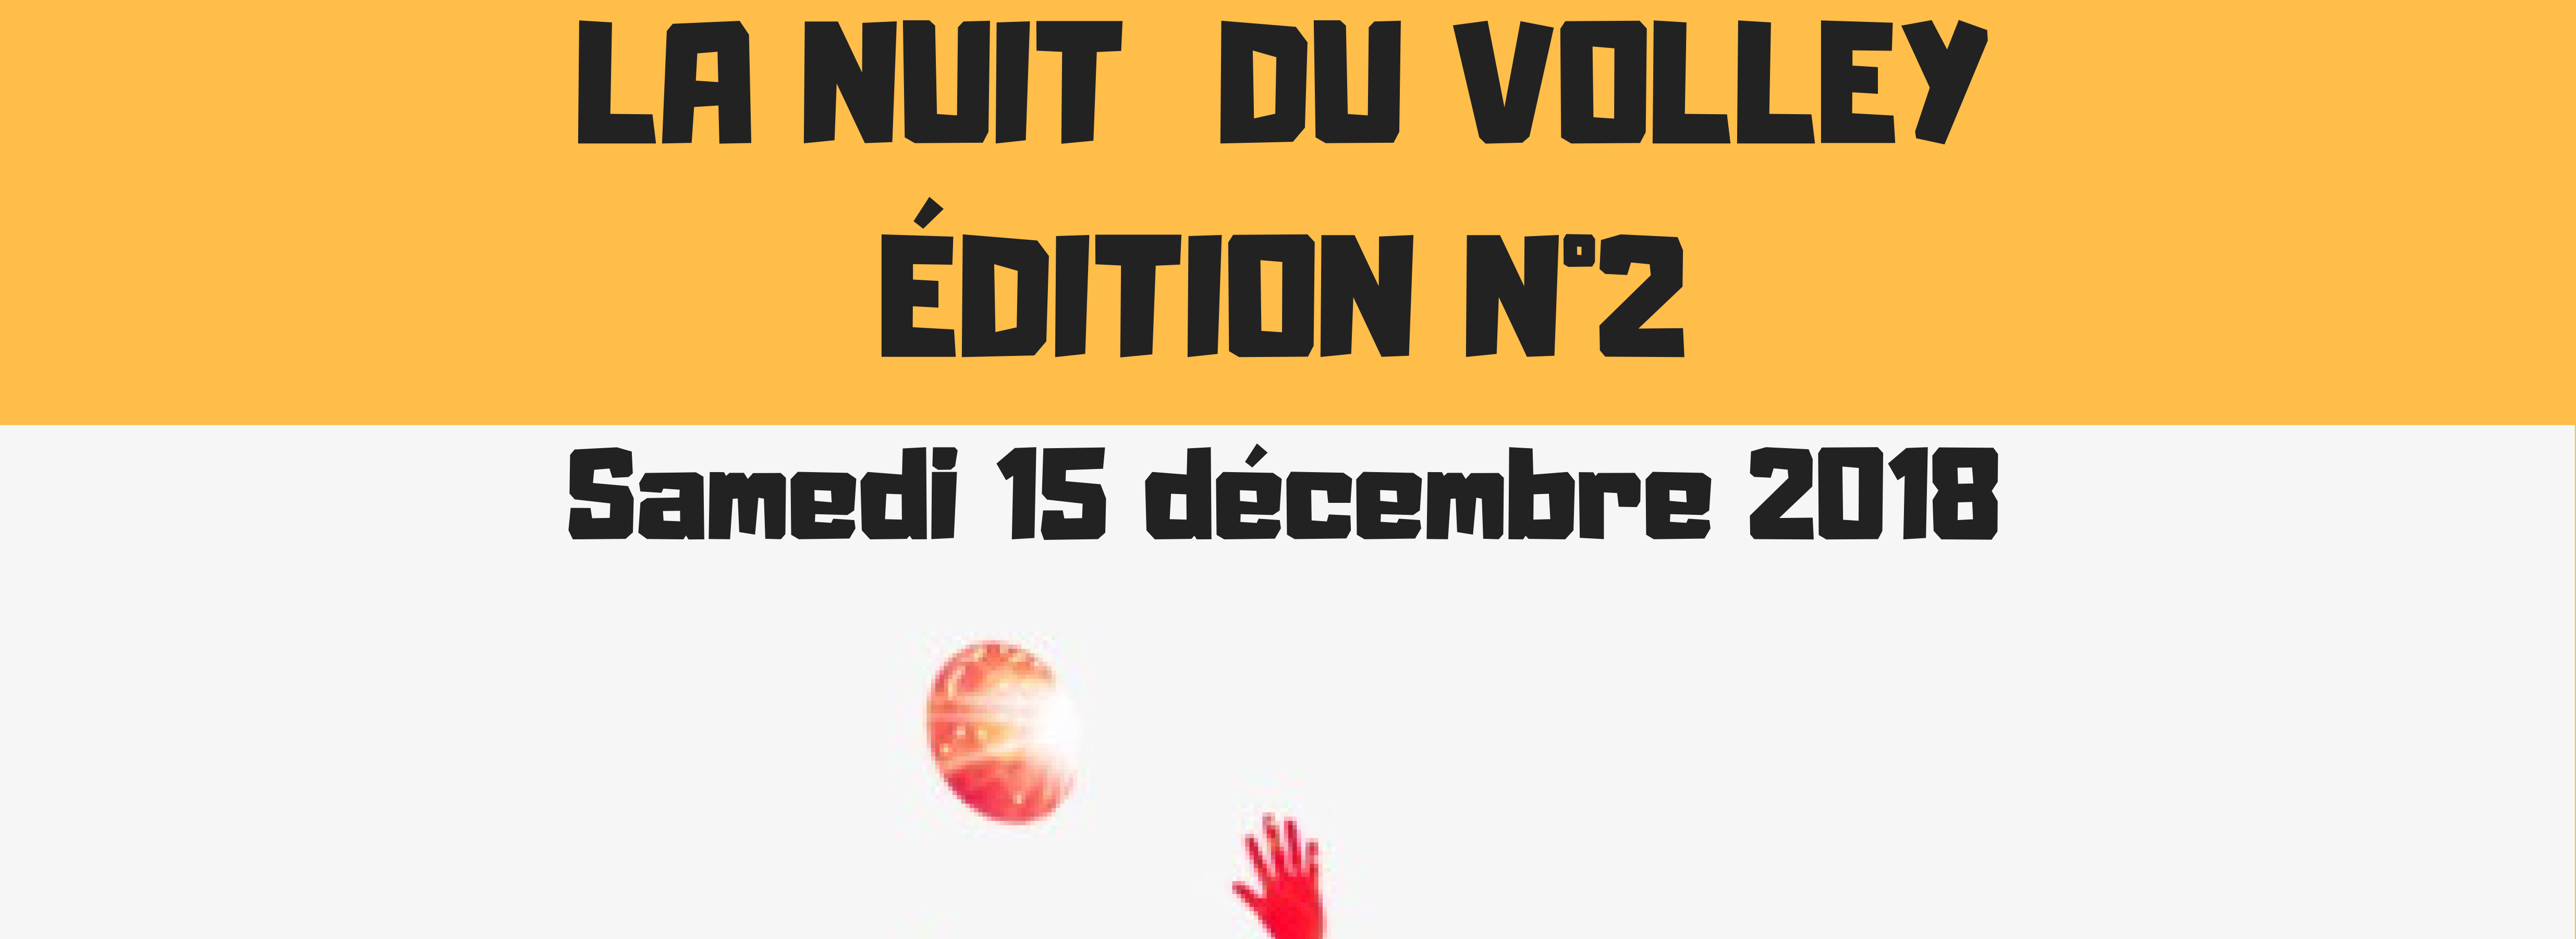 nuit-du-volley